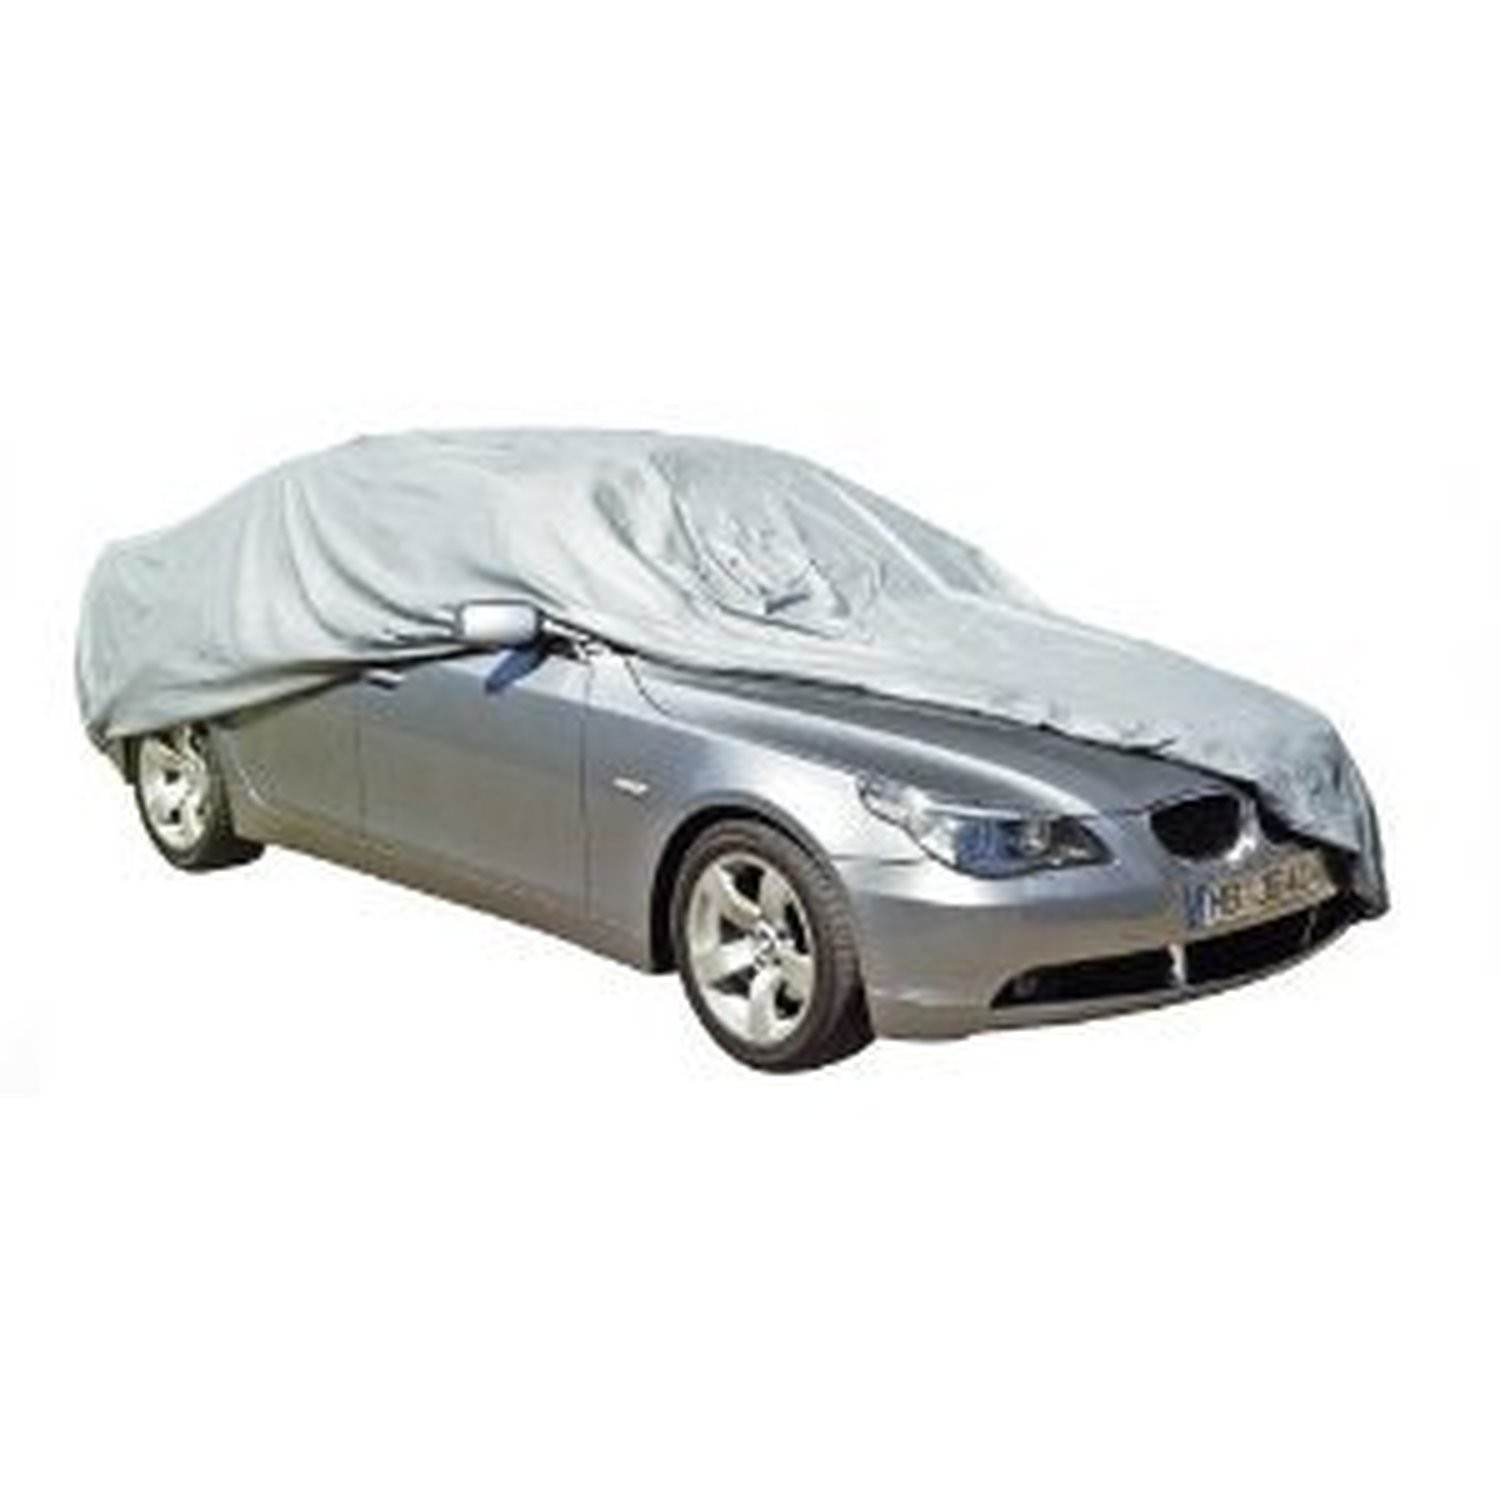 MG TD Ultimate Weather Protection Breathable Waterproof Car Cover (400 x 160 x 120 cm)